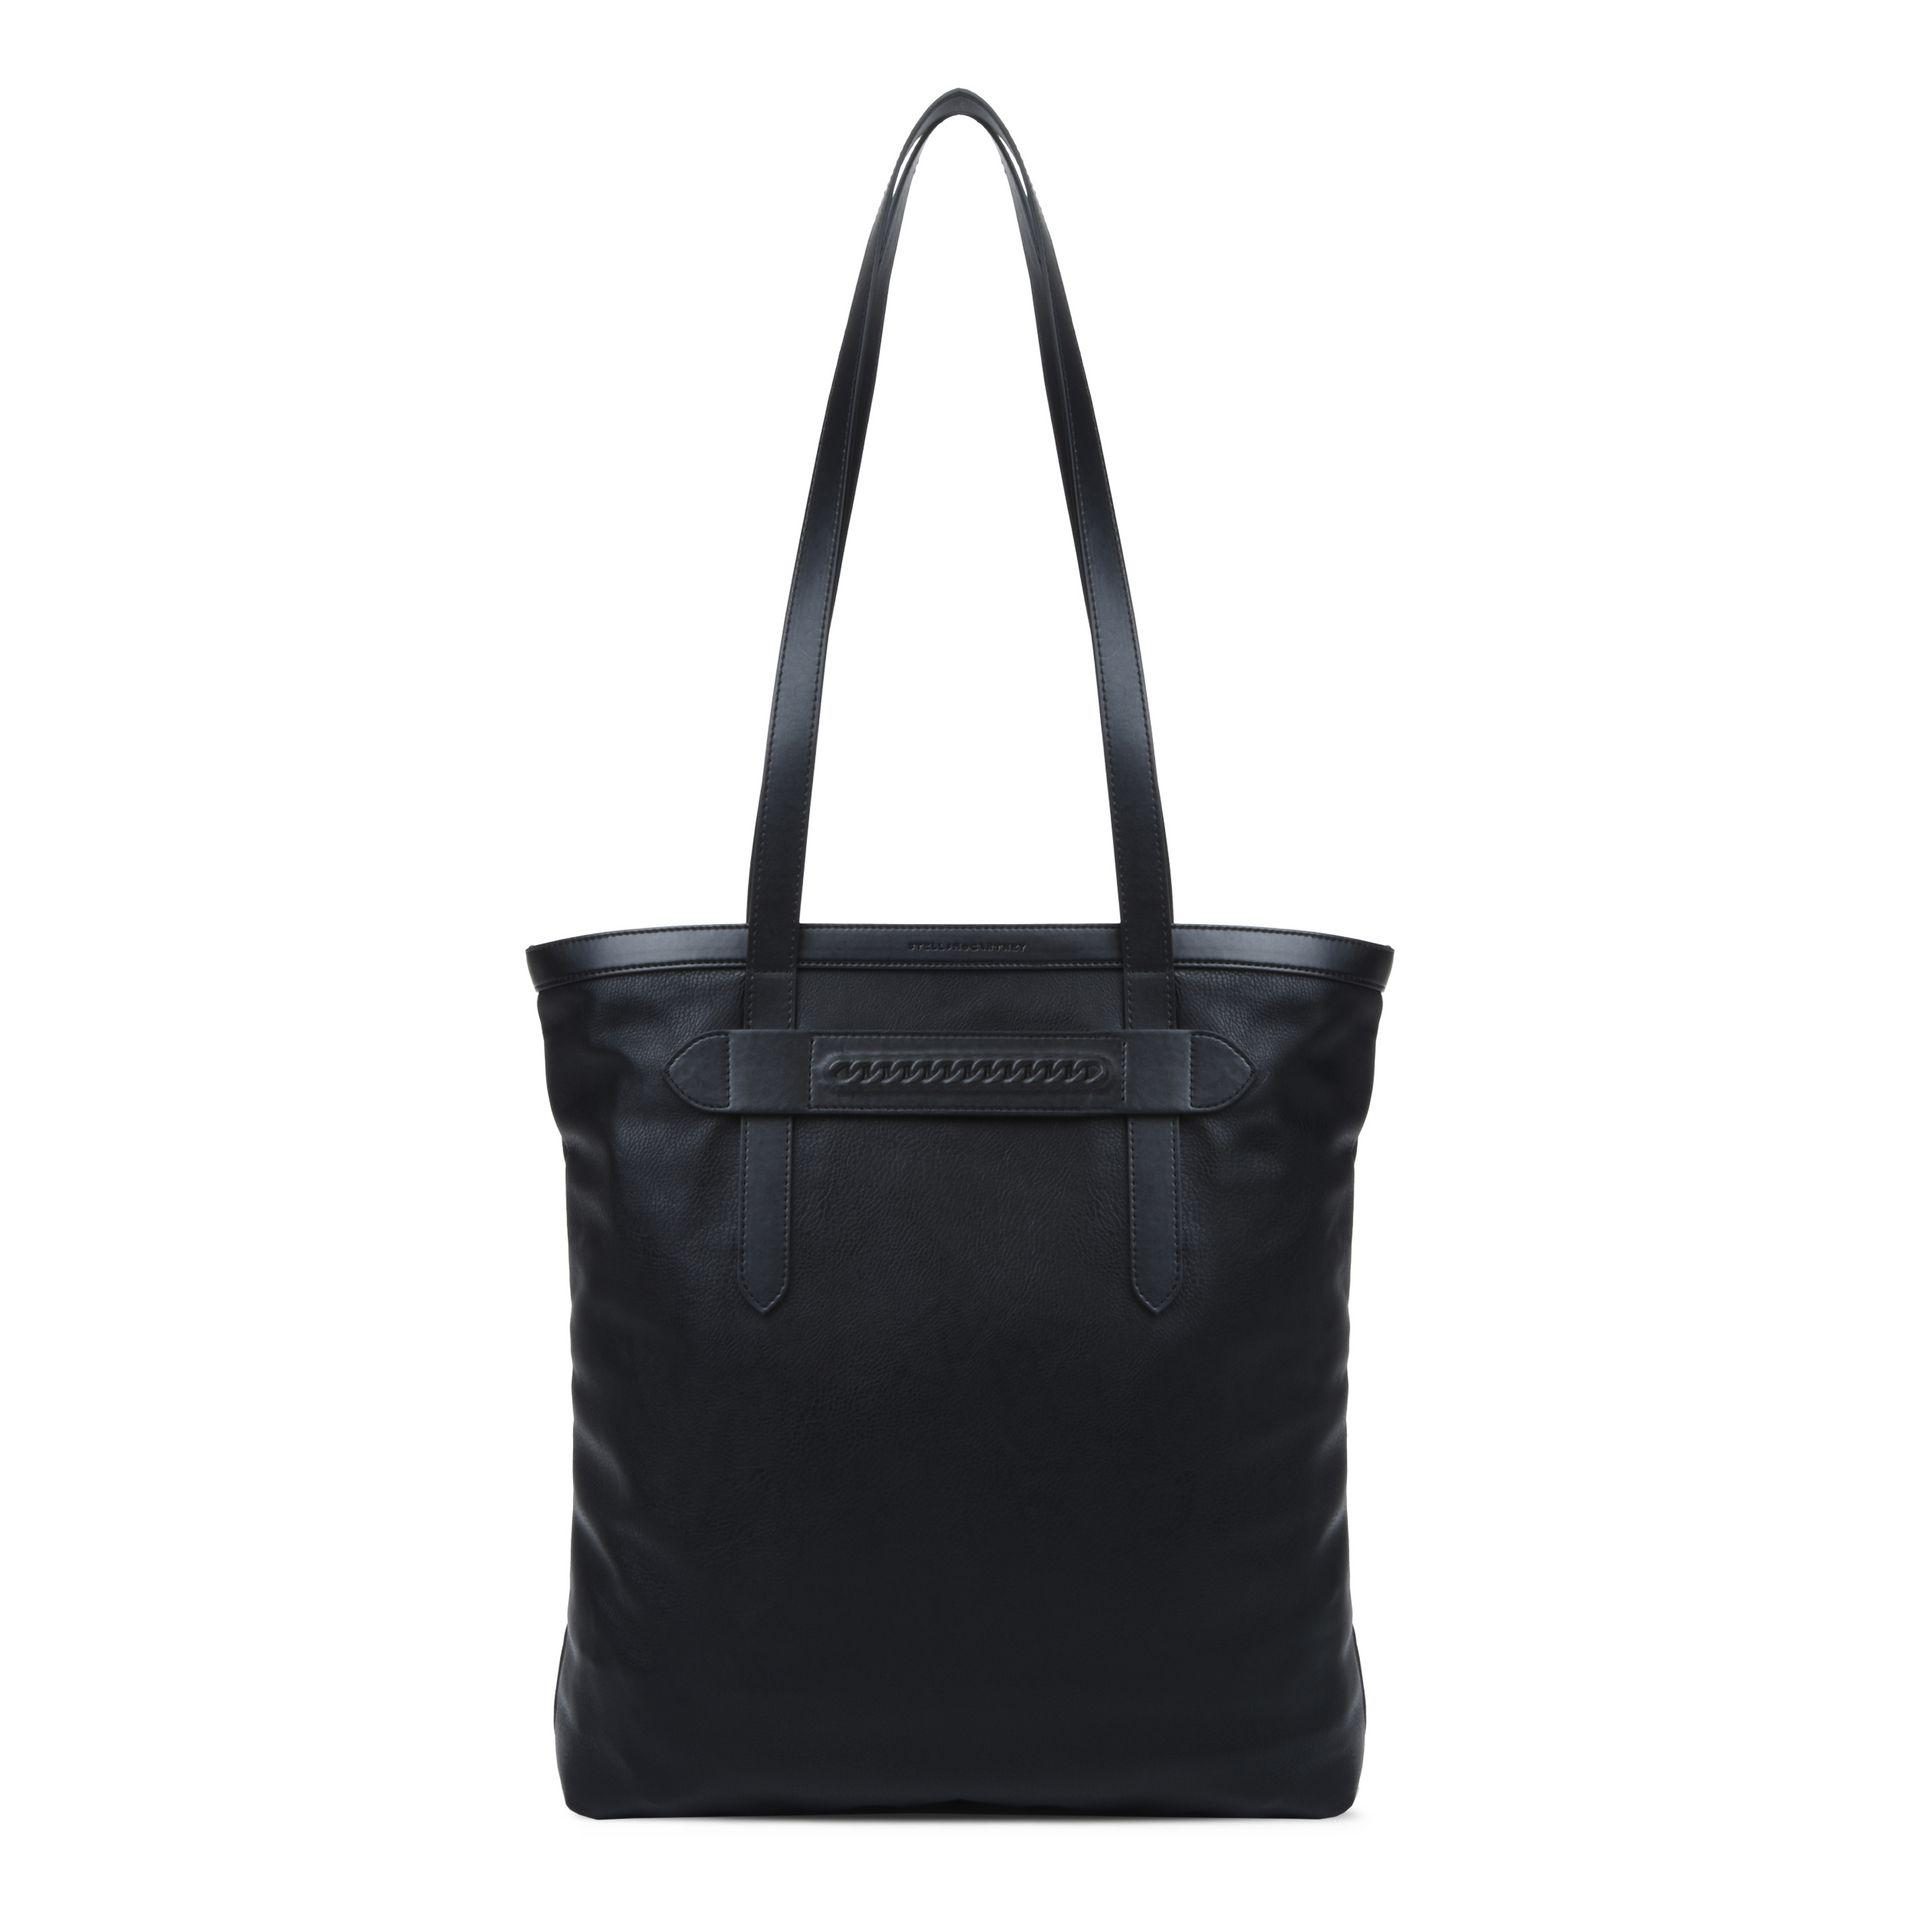 Oversize Alter Nappa East West Stella Logo Tote Bag in Black Eco Leather Stella McCartney OaSkTjhO